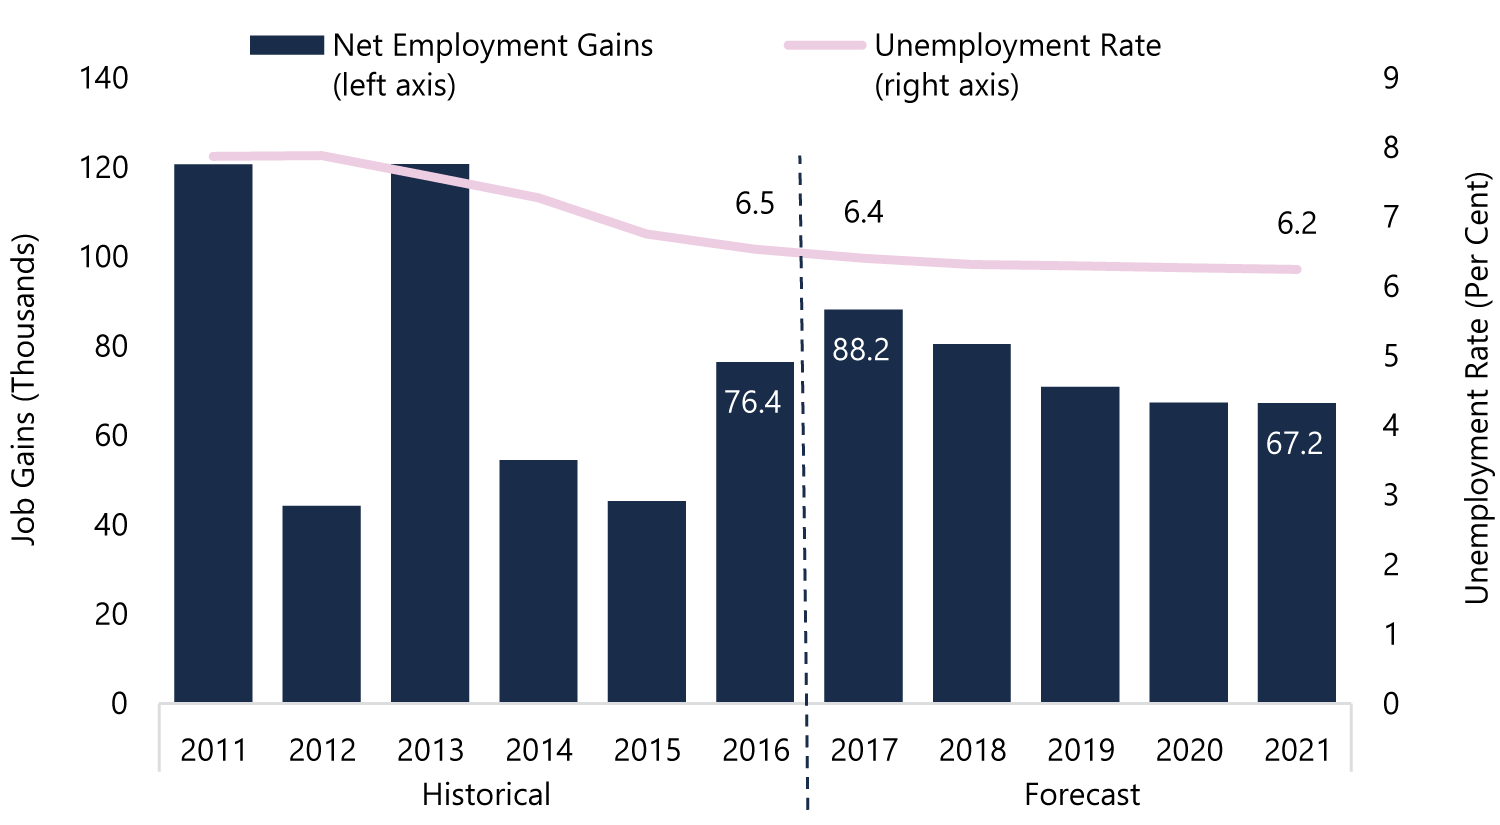 Steady Employment Gains as Unemployment Rate Slowly Trends Lower